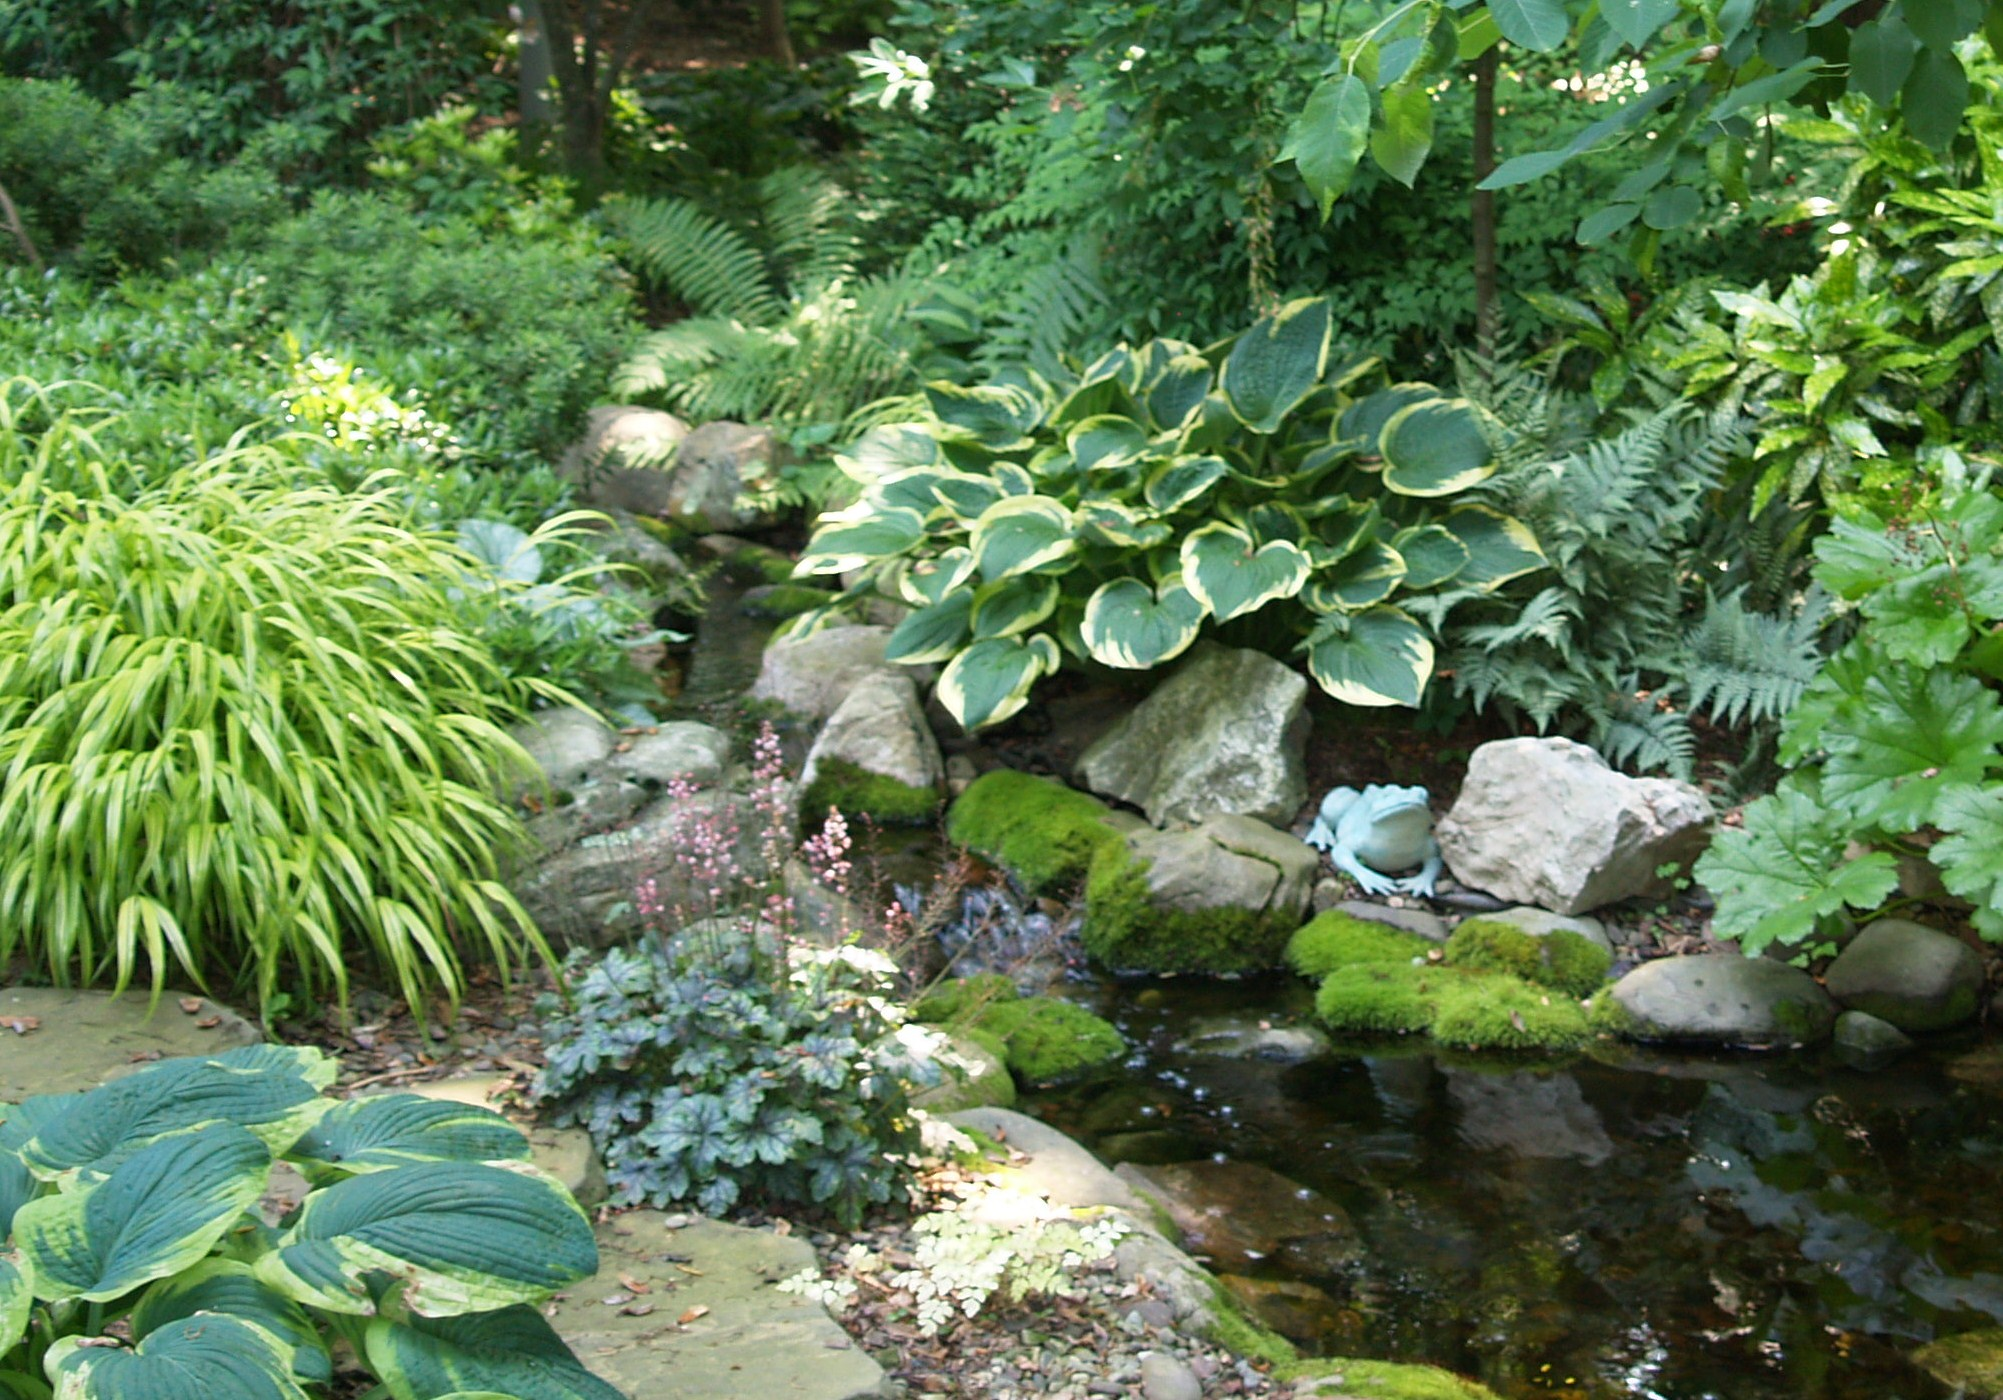 Rock and stone work ramblin 39 through dave 39 s garden for Garden pond stones